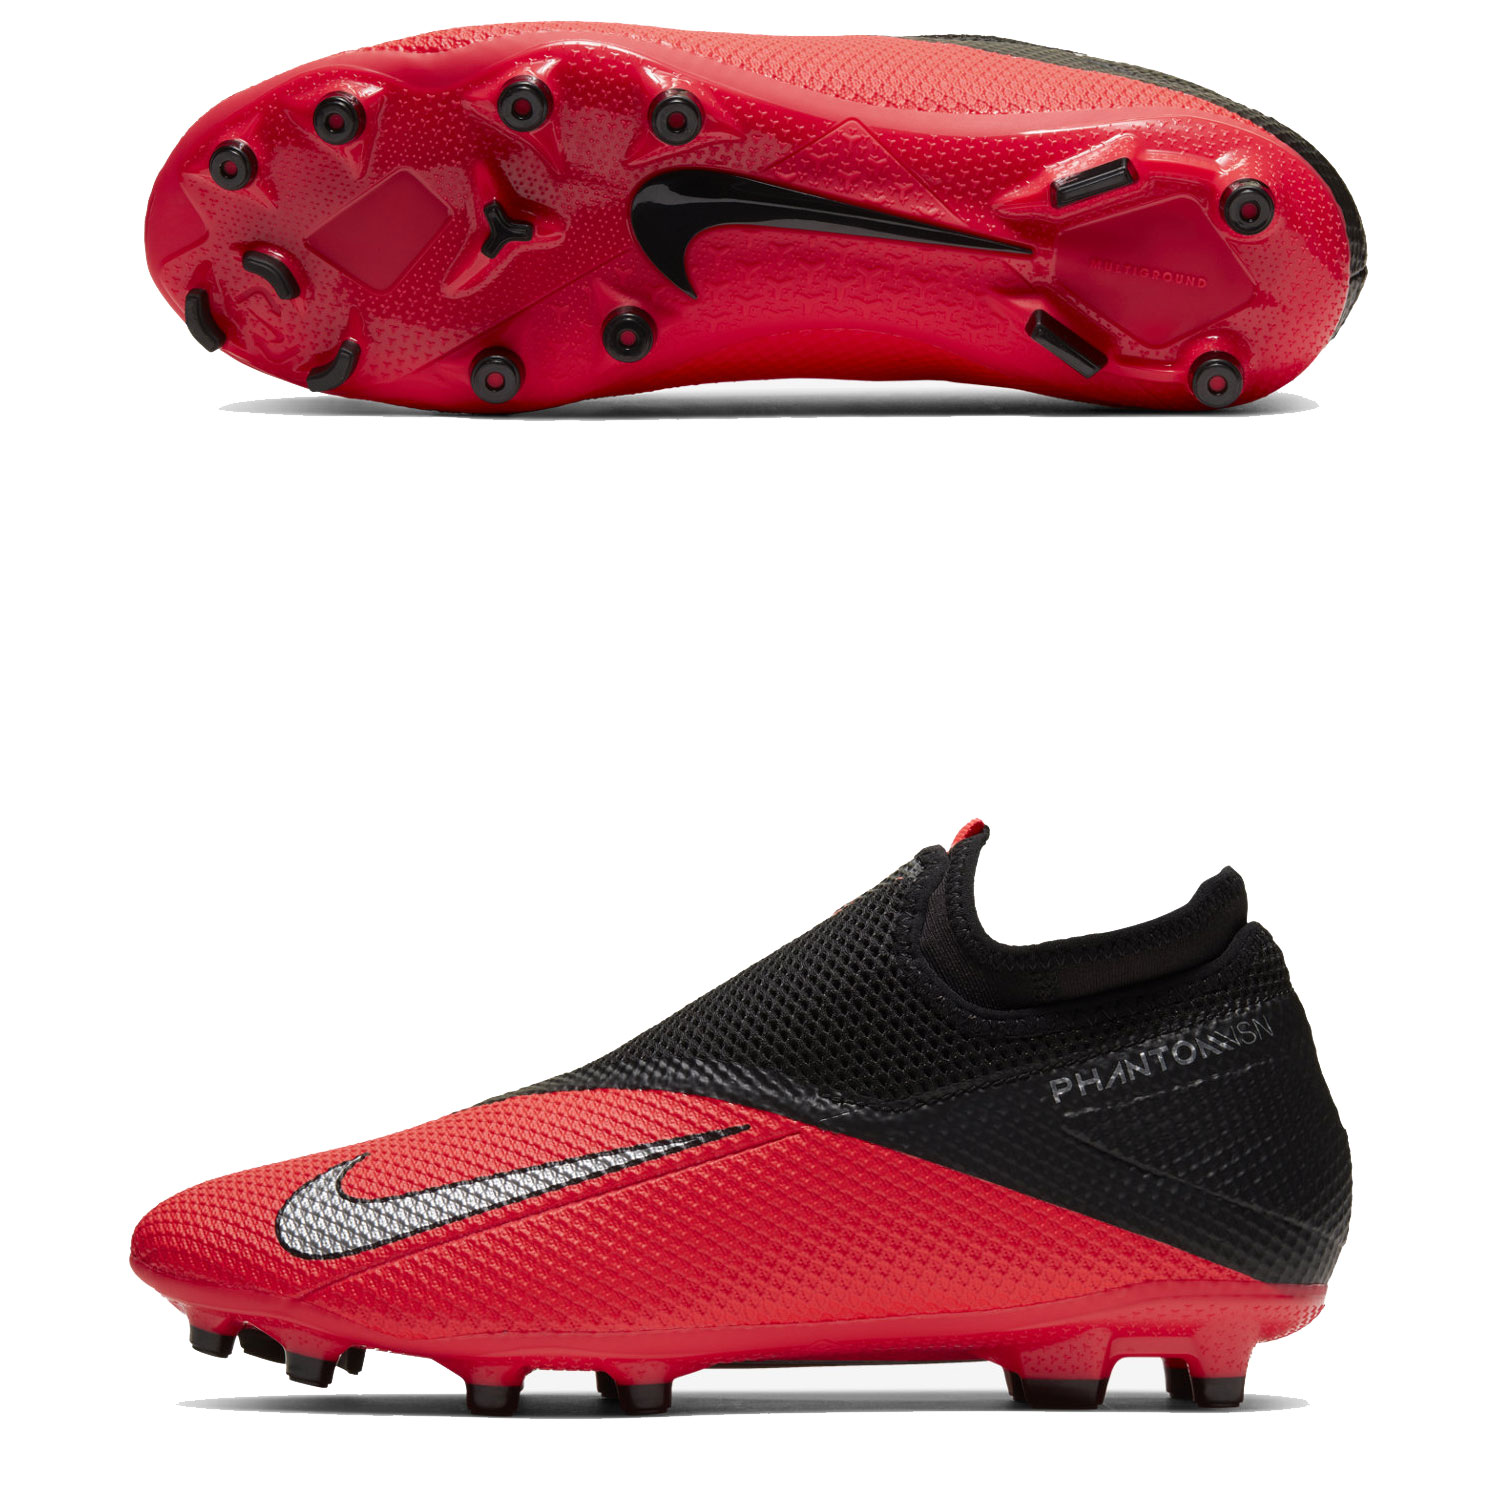 NIKE PHANTOM VSN 2 ACADEMY DF FG/MG CD4156-606